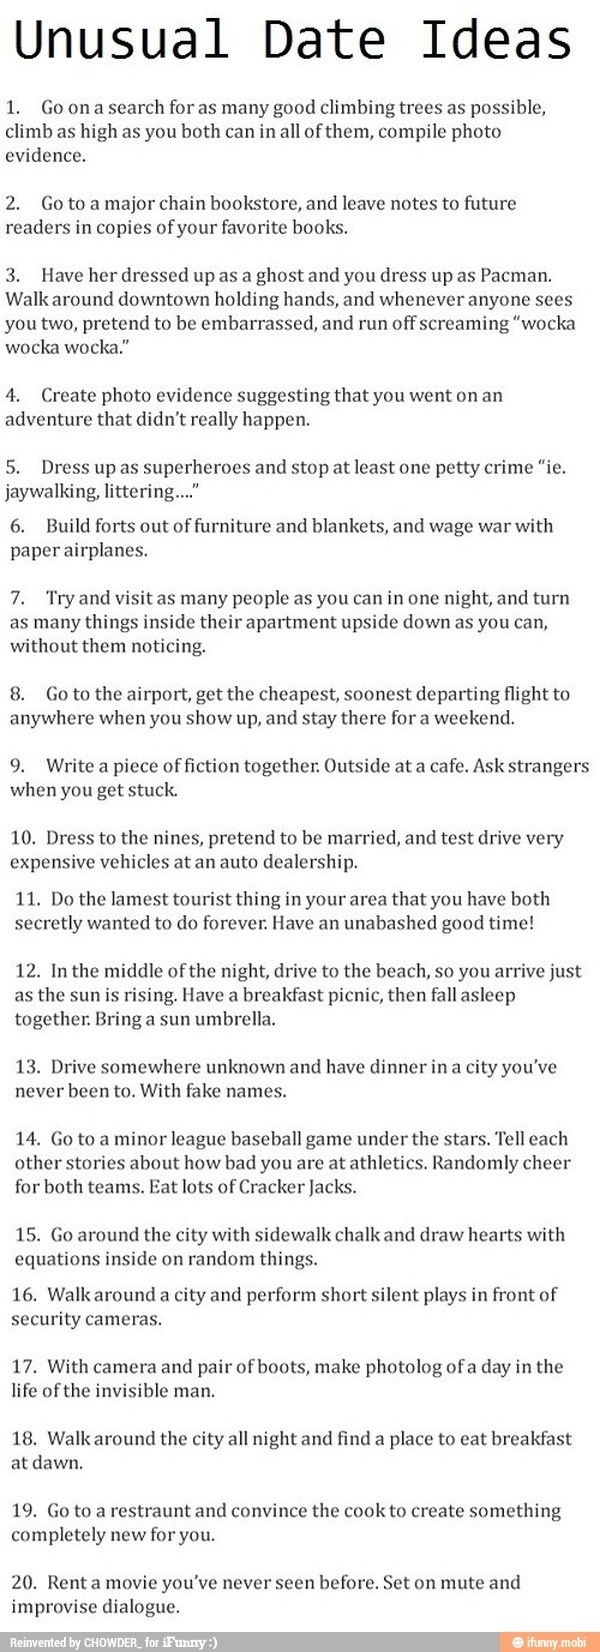 Unique date ideas.  These are definite musts for the future!!!